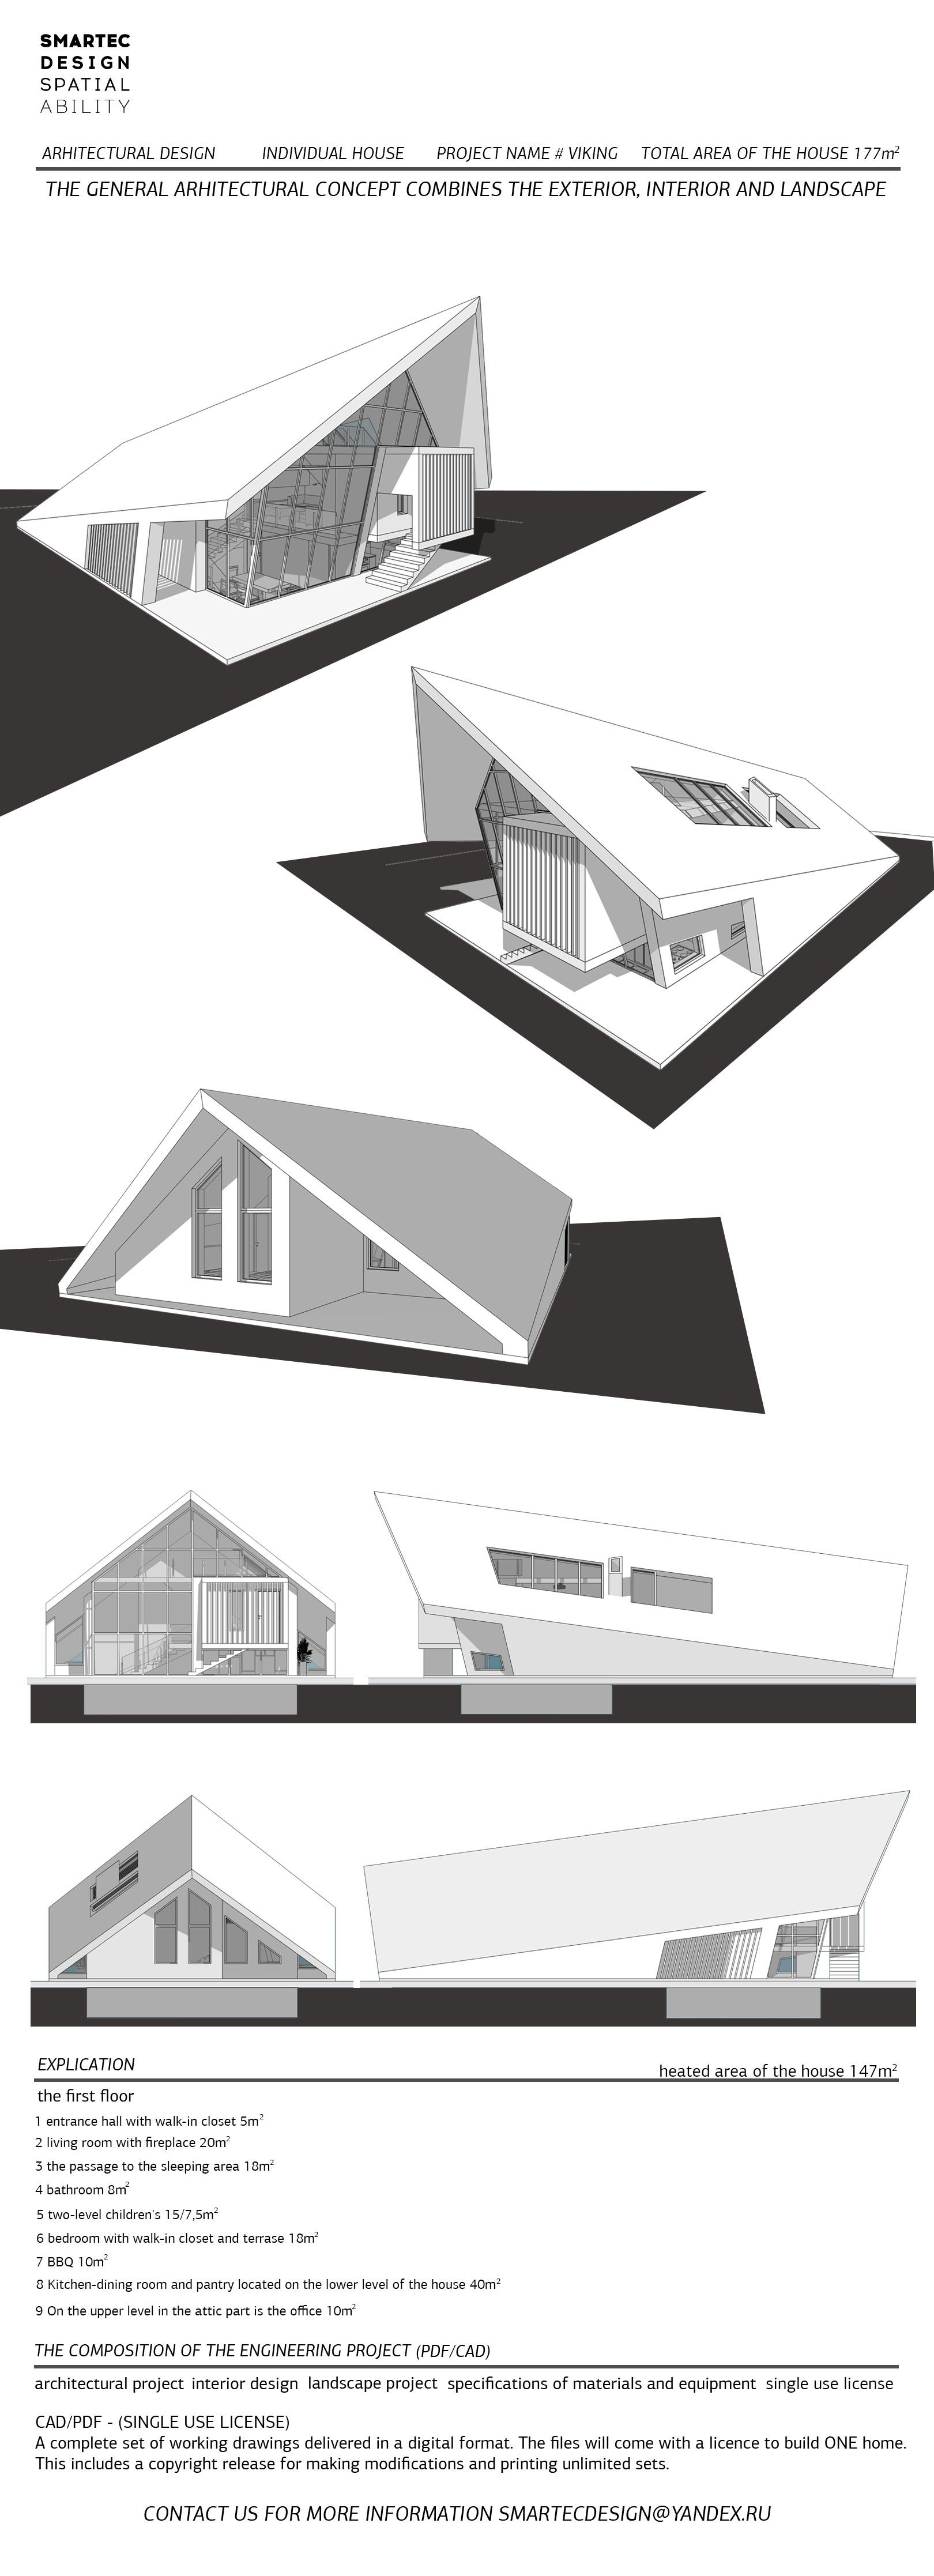 Architectural design concepts,,Viking,the general architectural ...